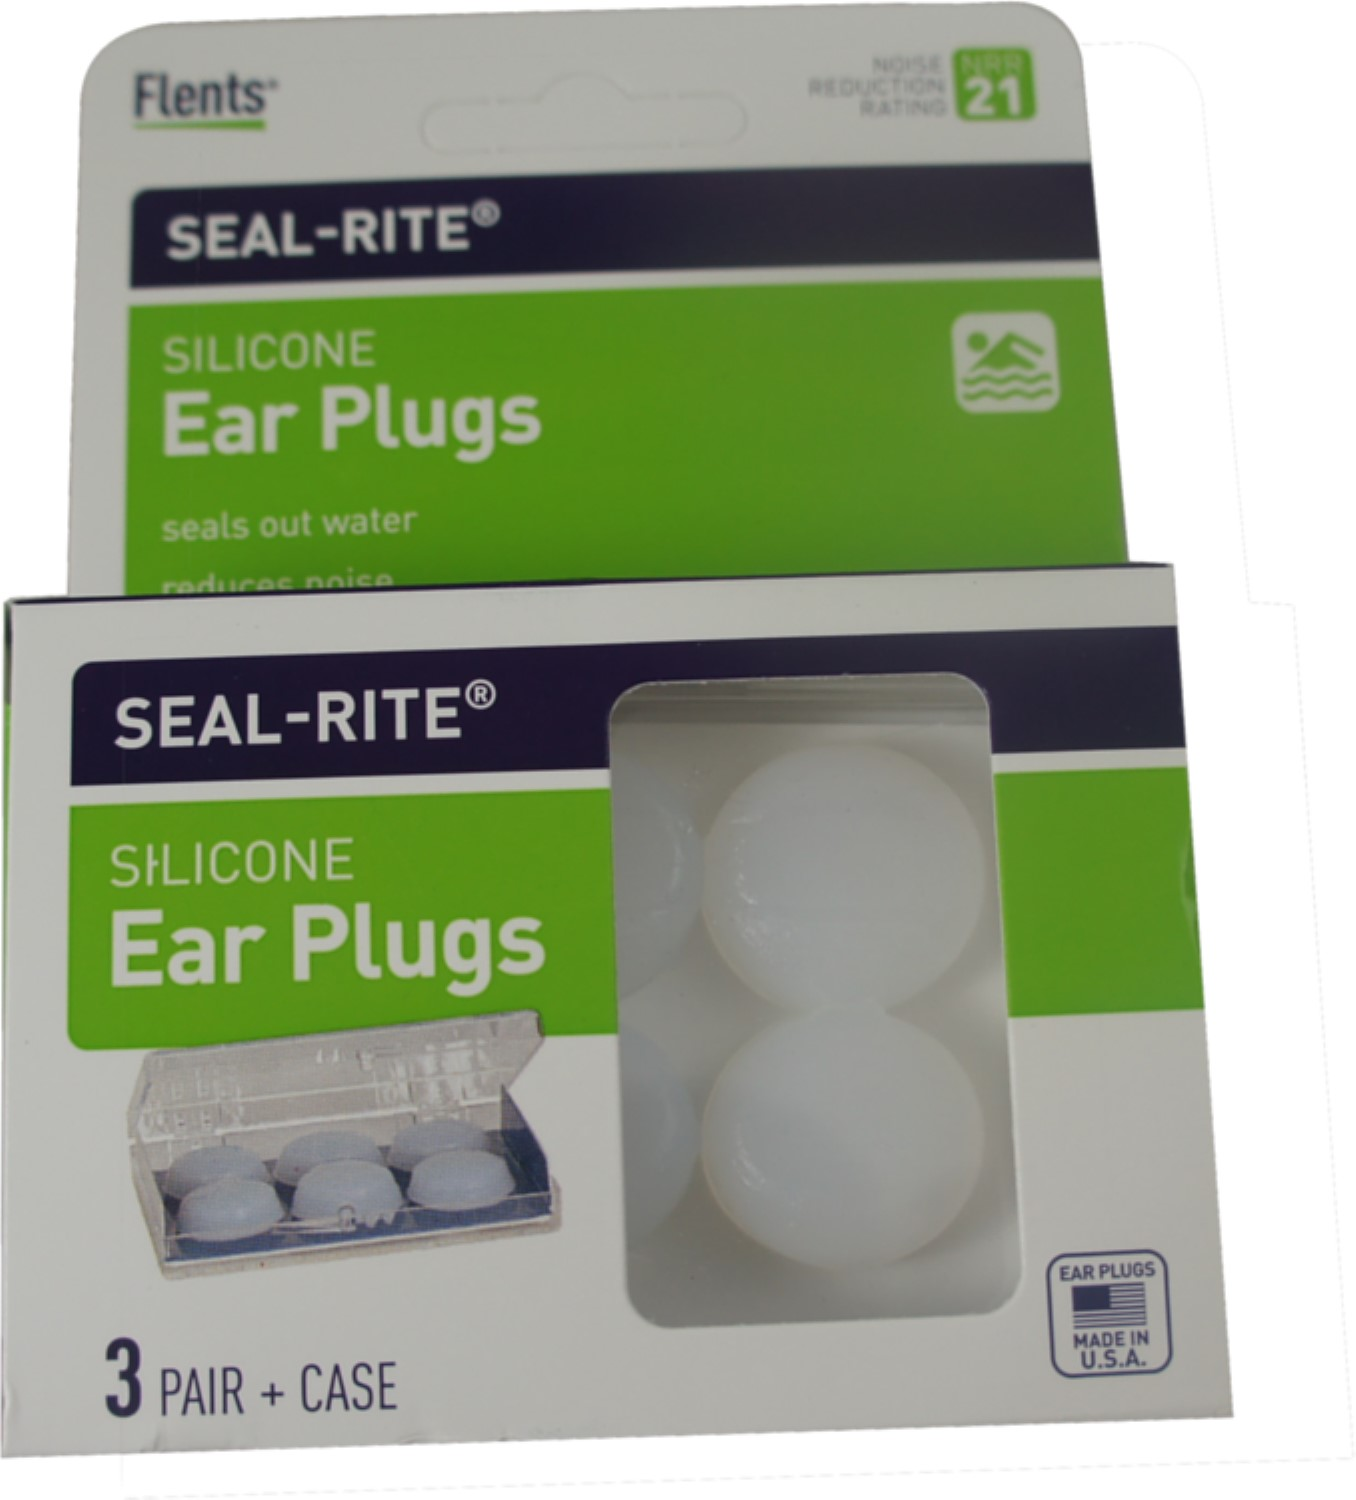 Flents Seal-Rite Silicone Ear Plugs, 3 Pairs (Pack of 3)